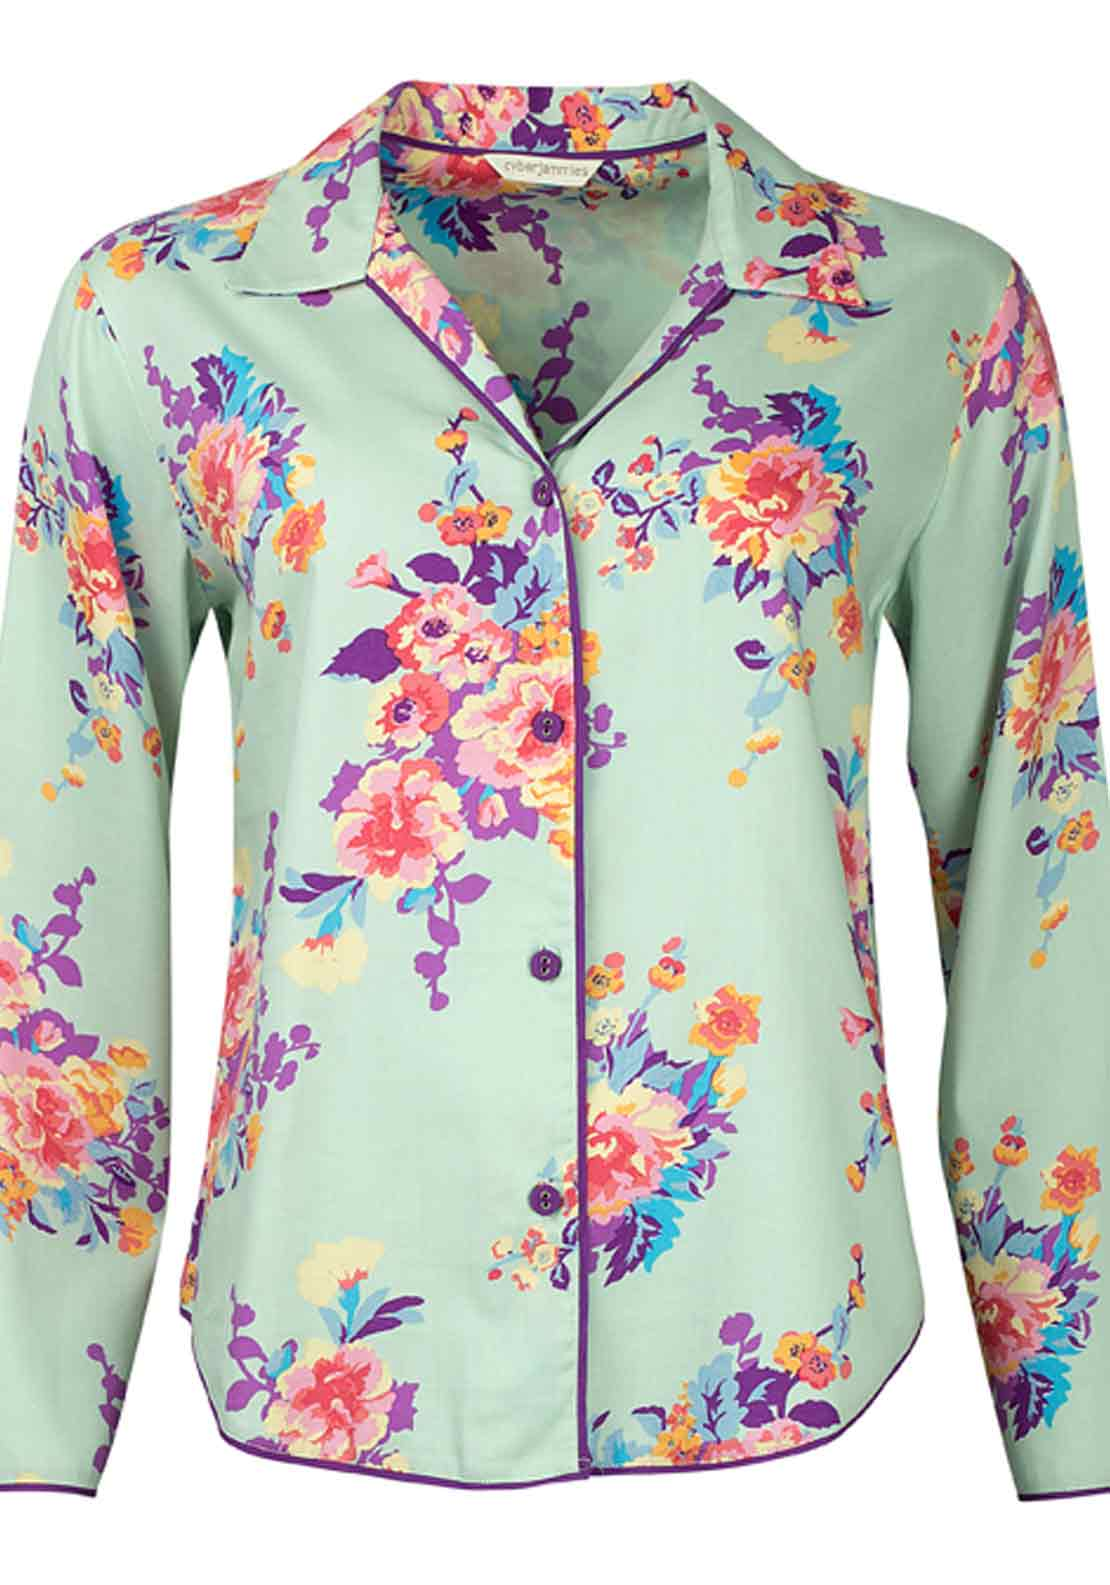 Cyberjammies Waterlily at Dusk Floral Print Pyjama Top, Aqua Floral